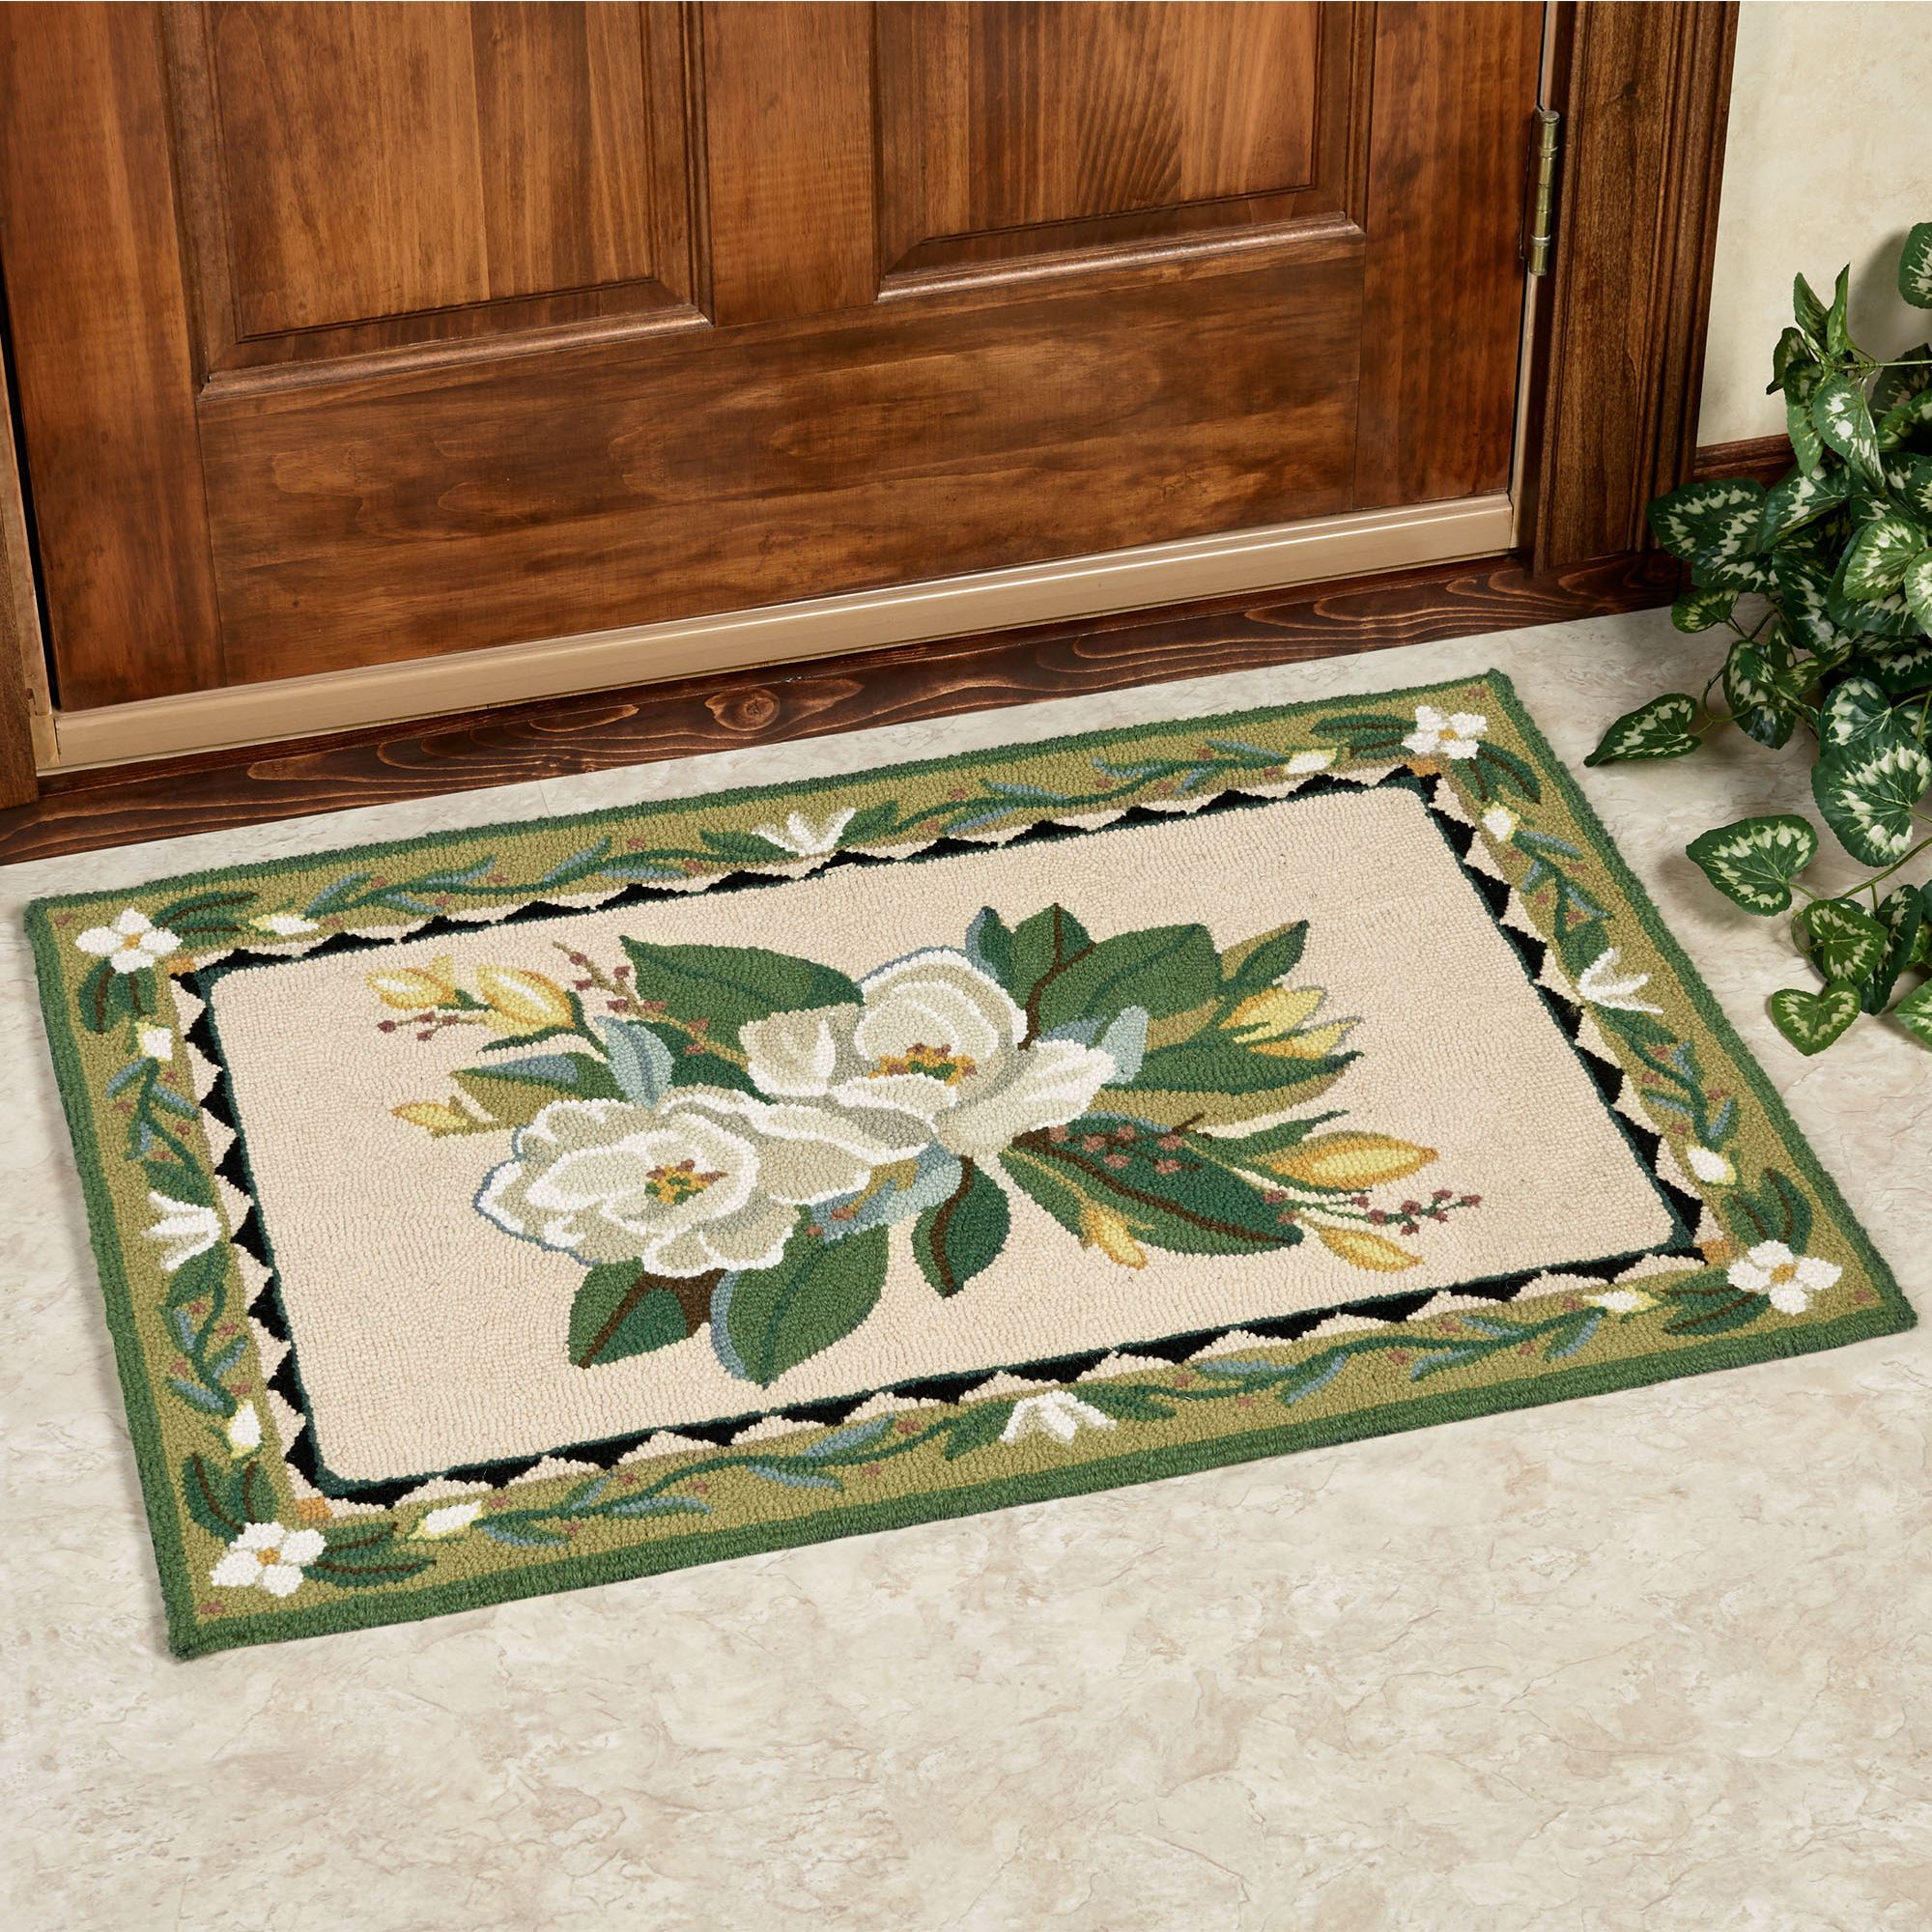 fresh with ty simple fixer magnolia s style trinty ivory of home ant company trinity upper area timeless p showcases by gaines designer rugs joanna rug and sand yet loloi country quaint charm